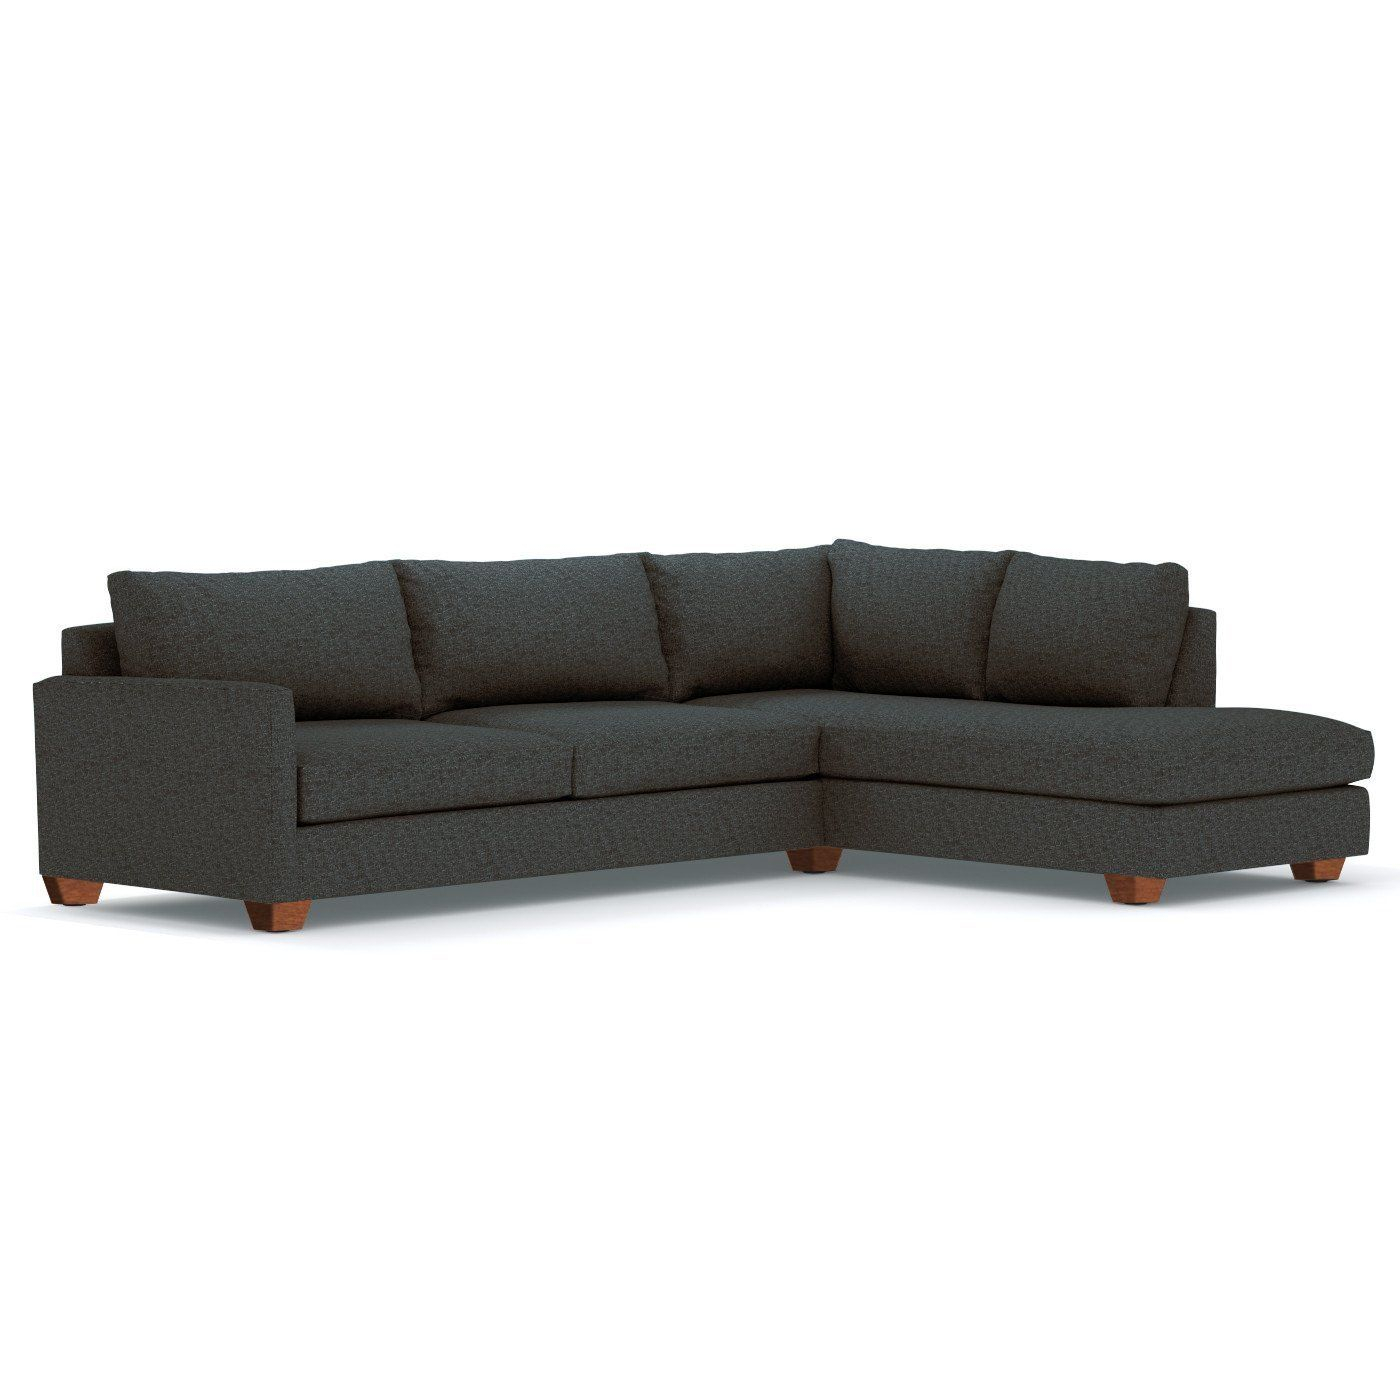 Apt 2B Tuxedo Two Piece Sectional Sofa | Furniture | Pinterest Intended For Patterson Ii Arm Sofa Chairs (View 13 of 25)